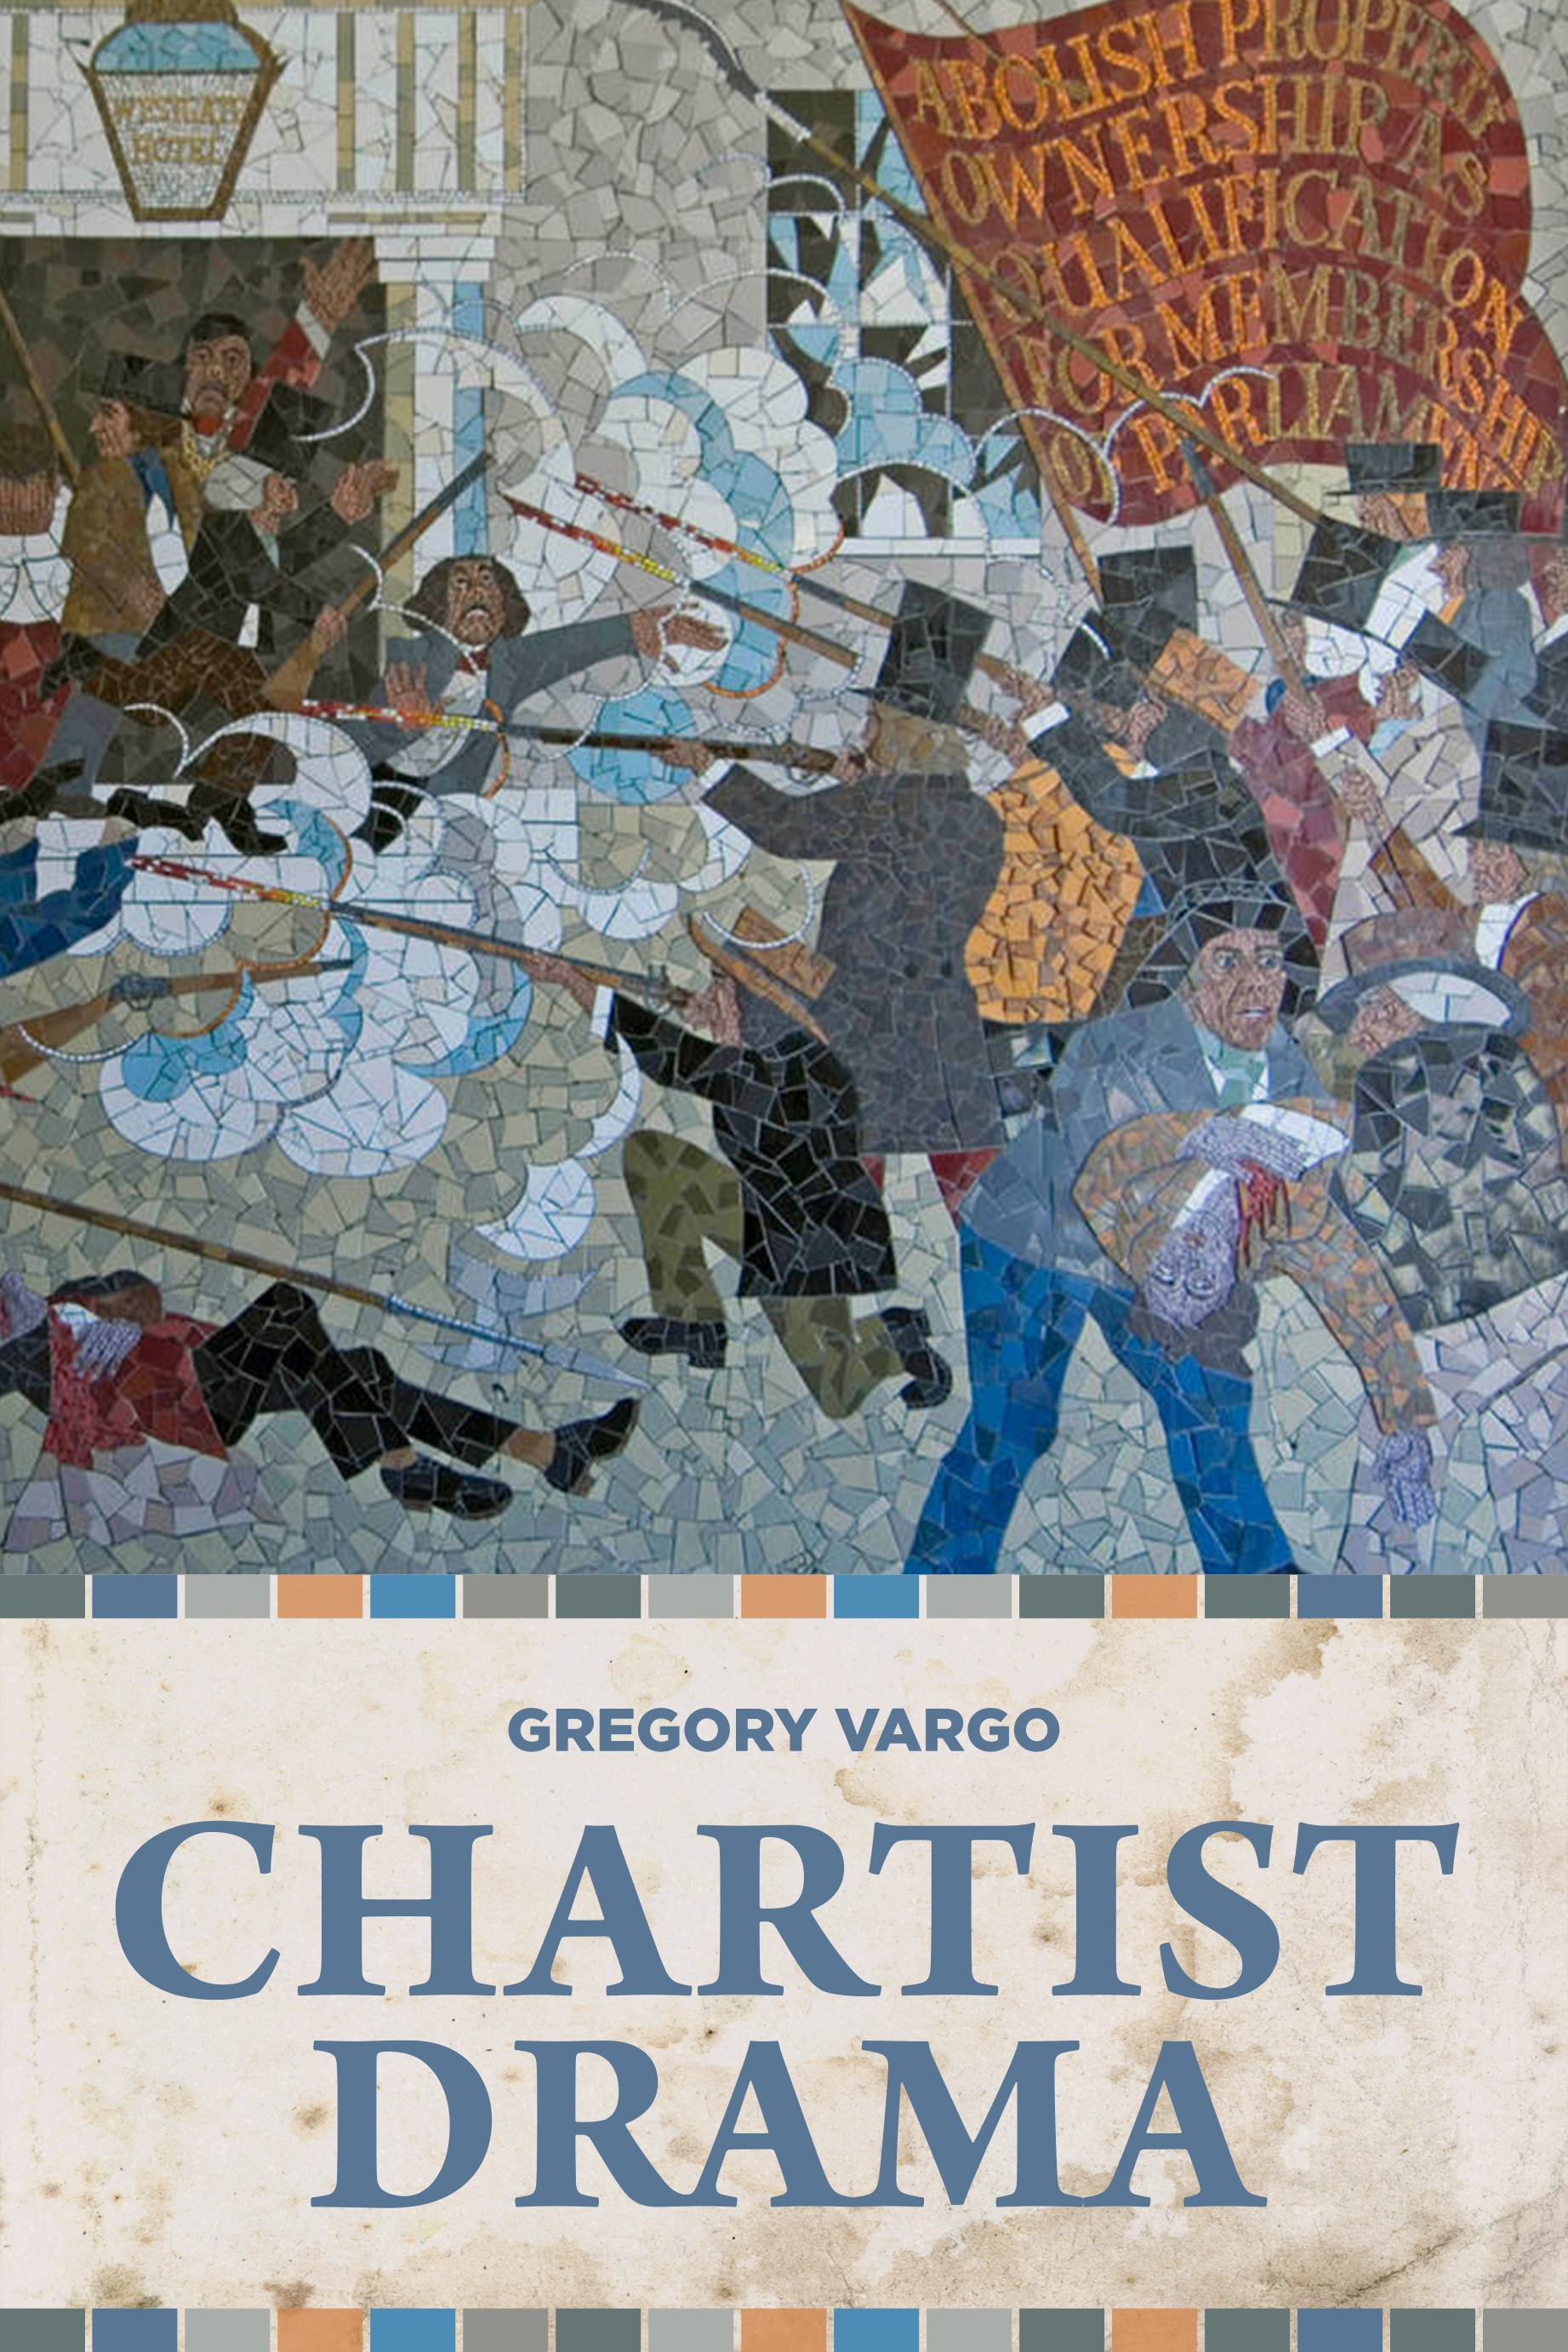 Chartist drama – Q&A with Gregory Vargo